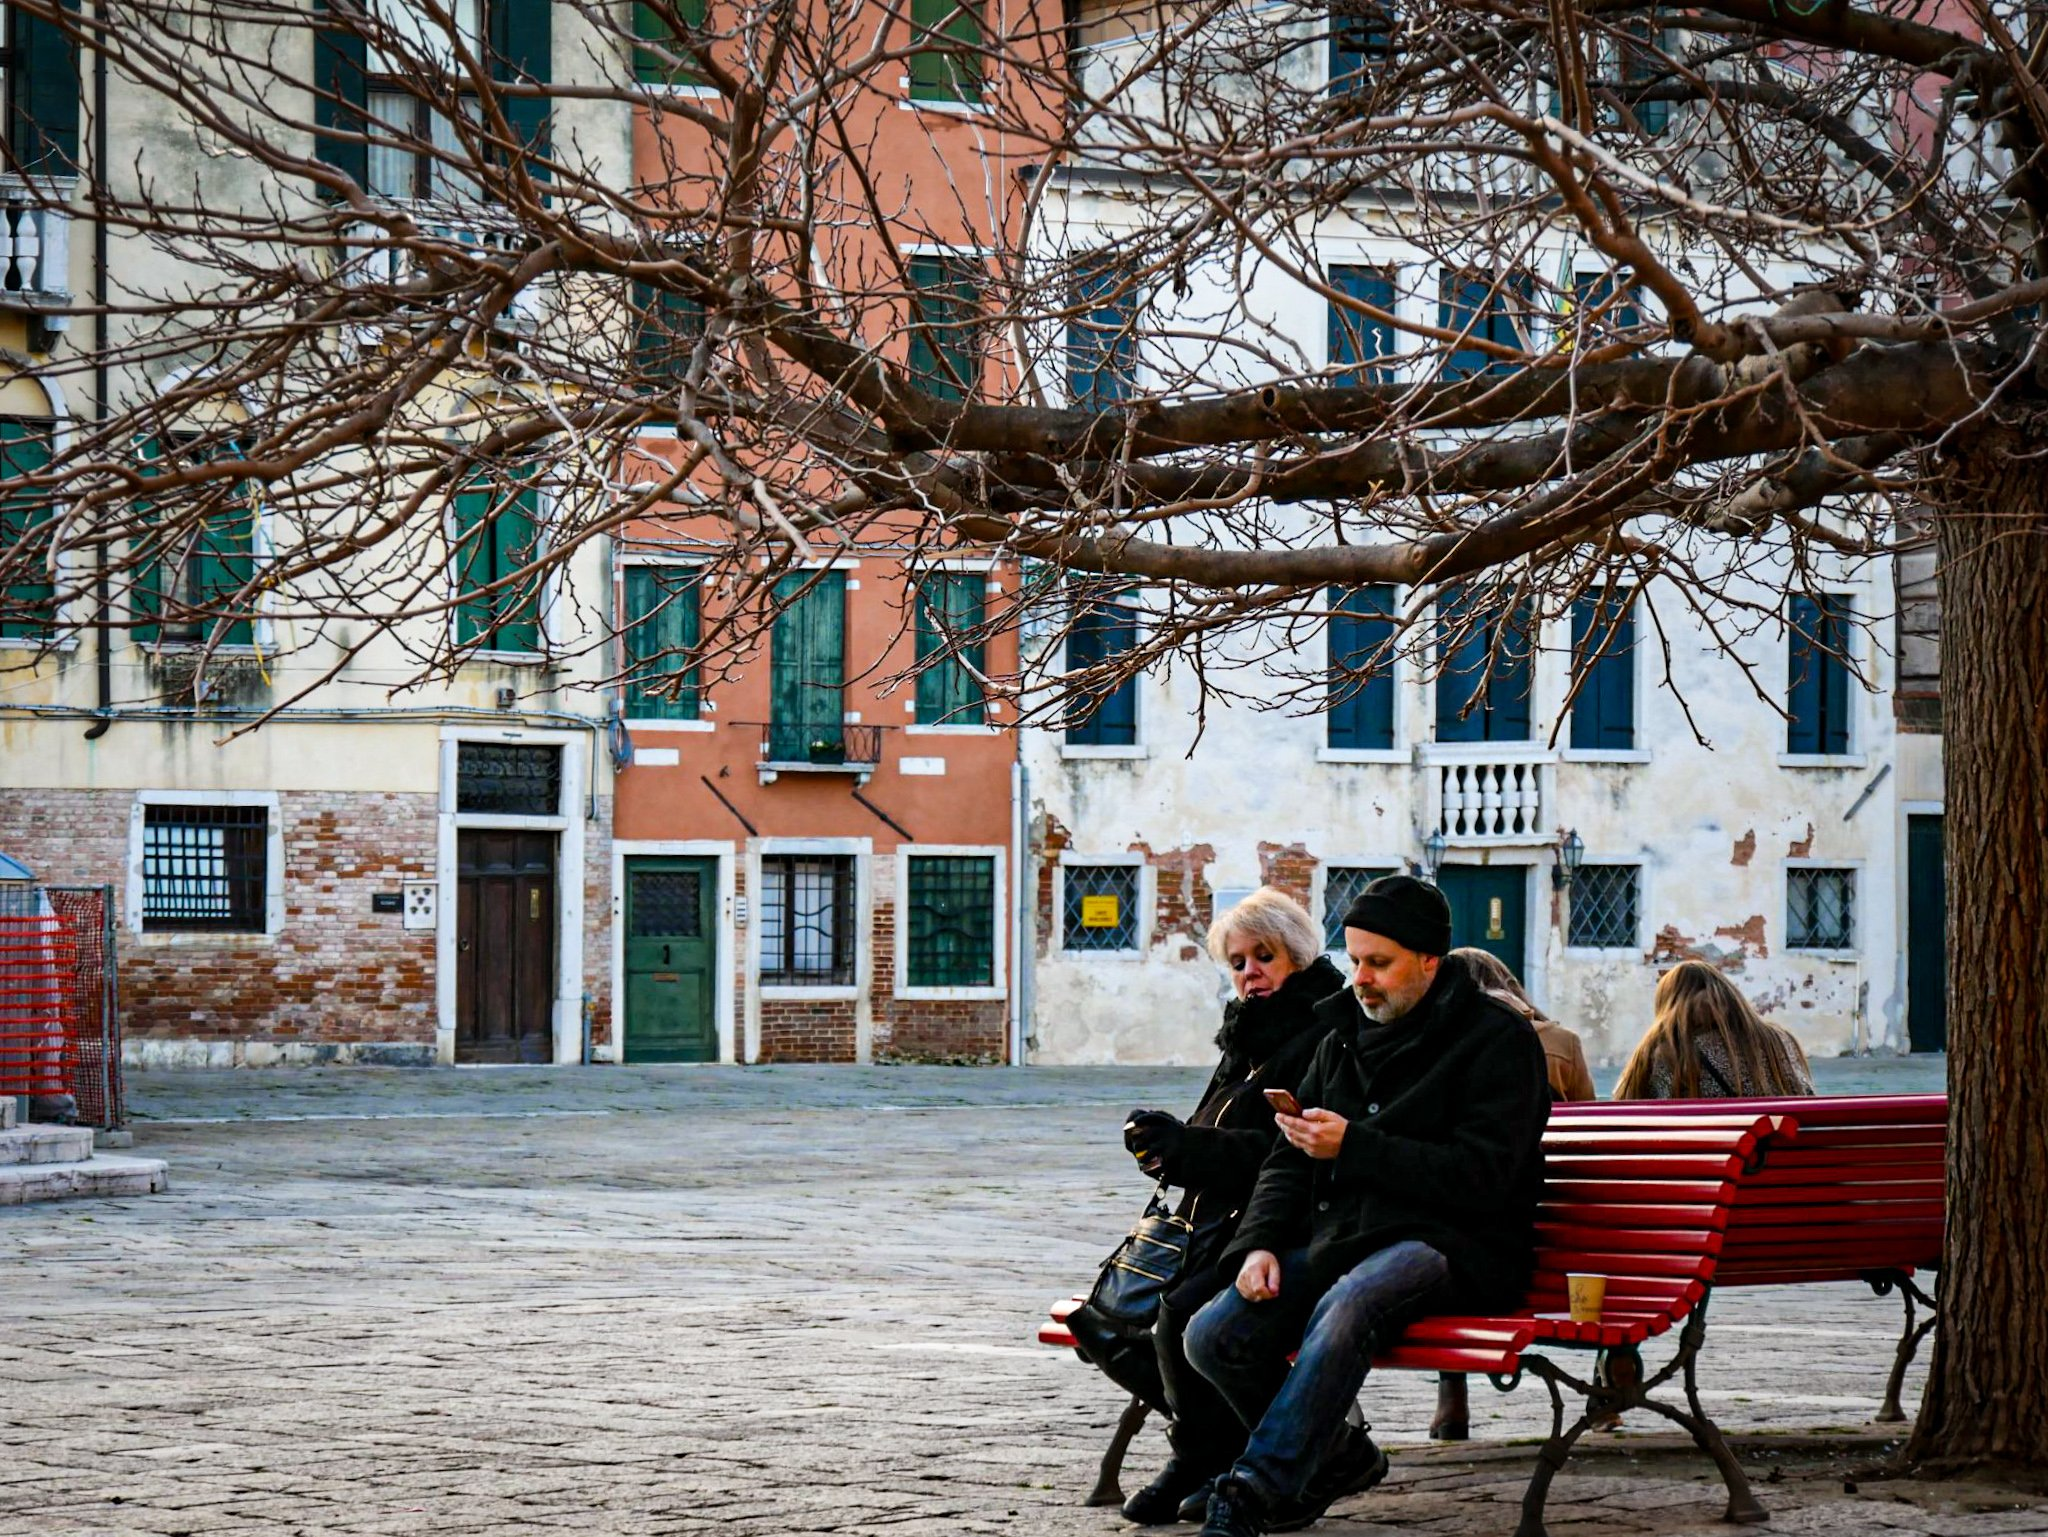 What to do in Venice? The Jewish Ghetto